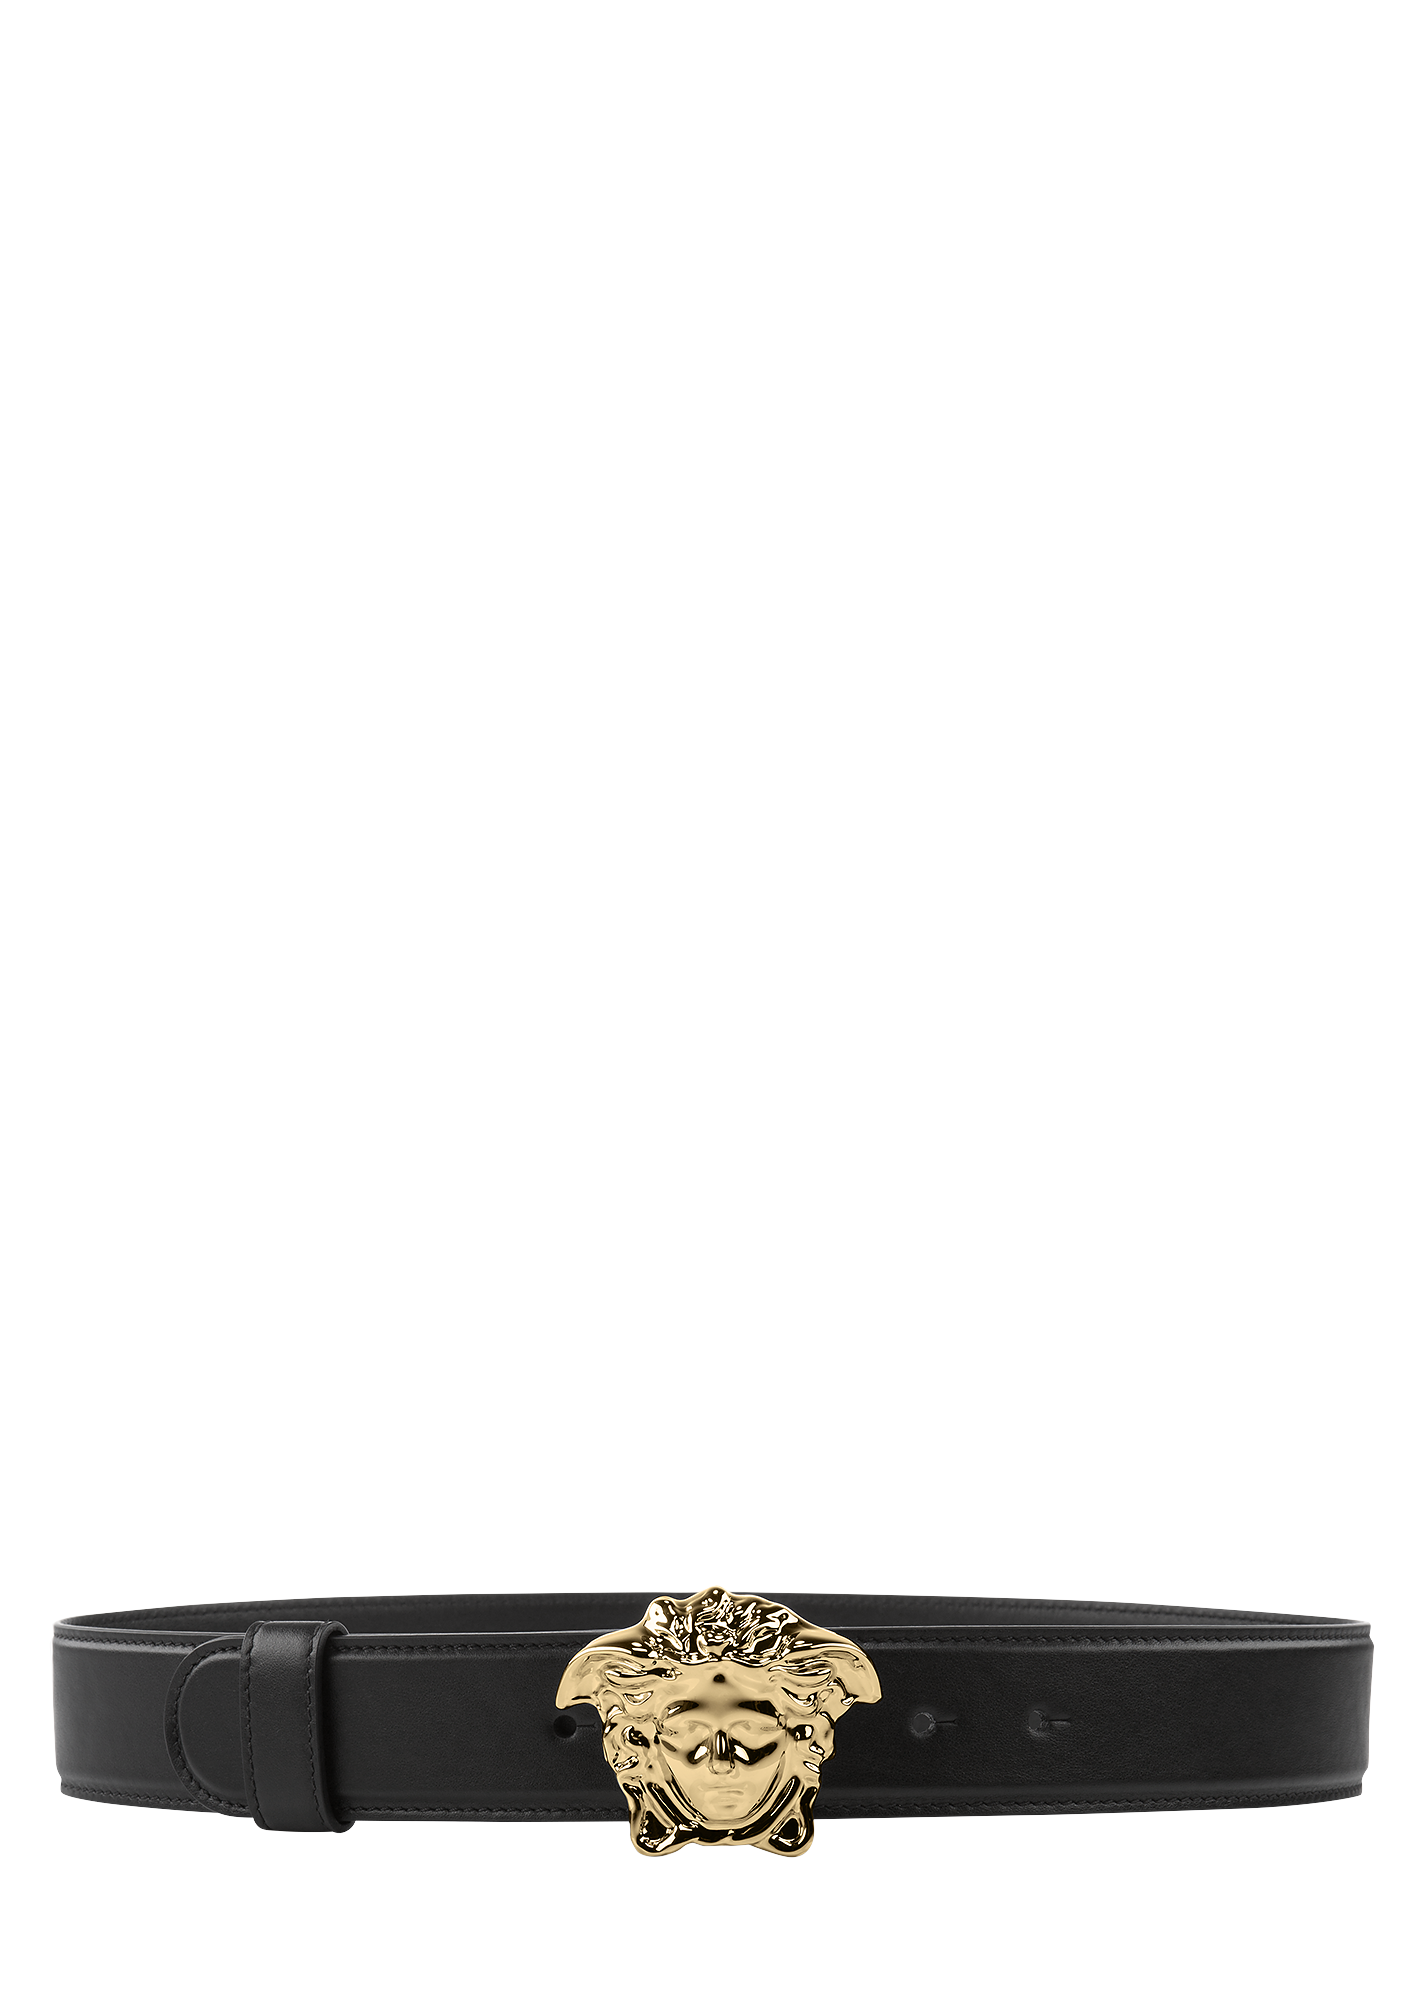 Palazzo Calf Leather Belt Gold And Black Belts Belts For Women Calf Leather Belt